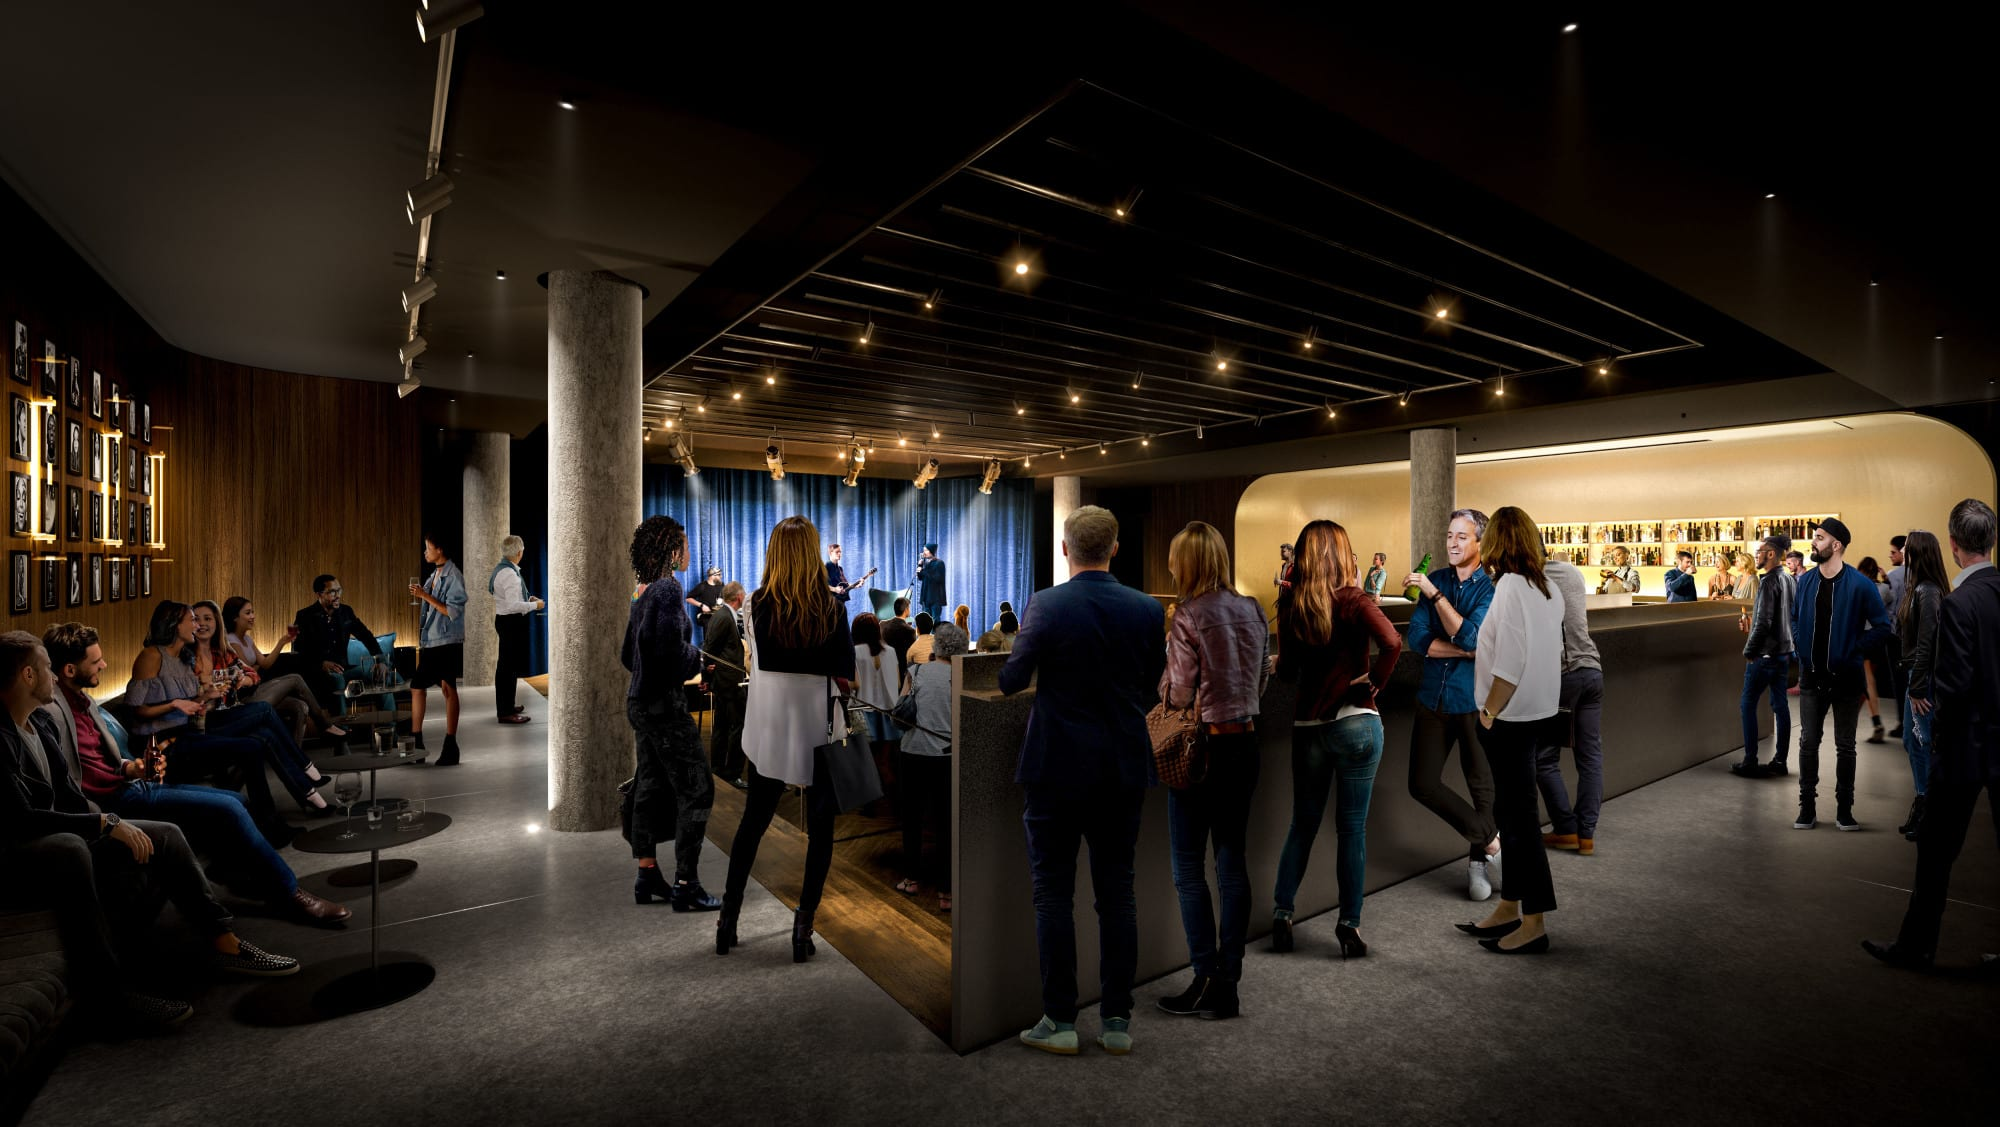 Rendering of the Basement Bar at the Allied Music Centre